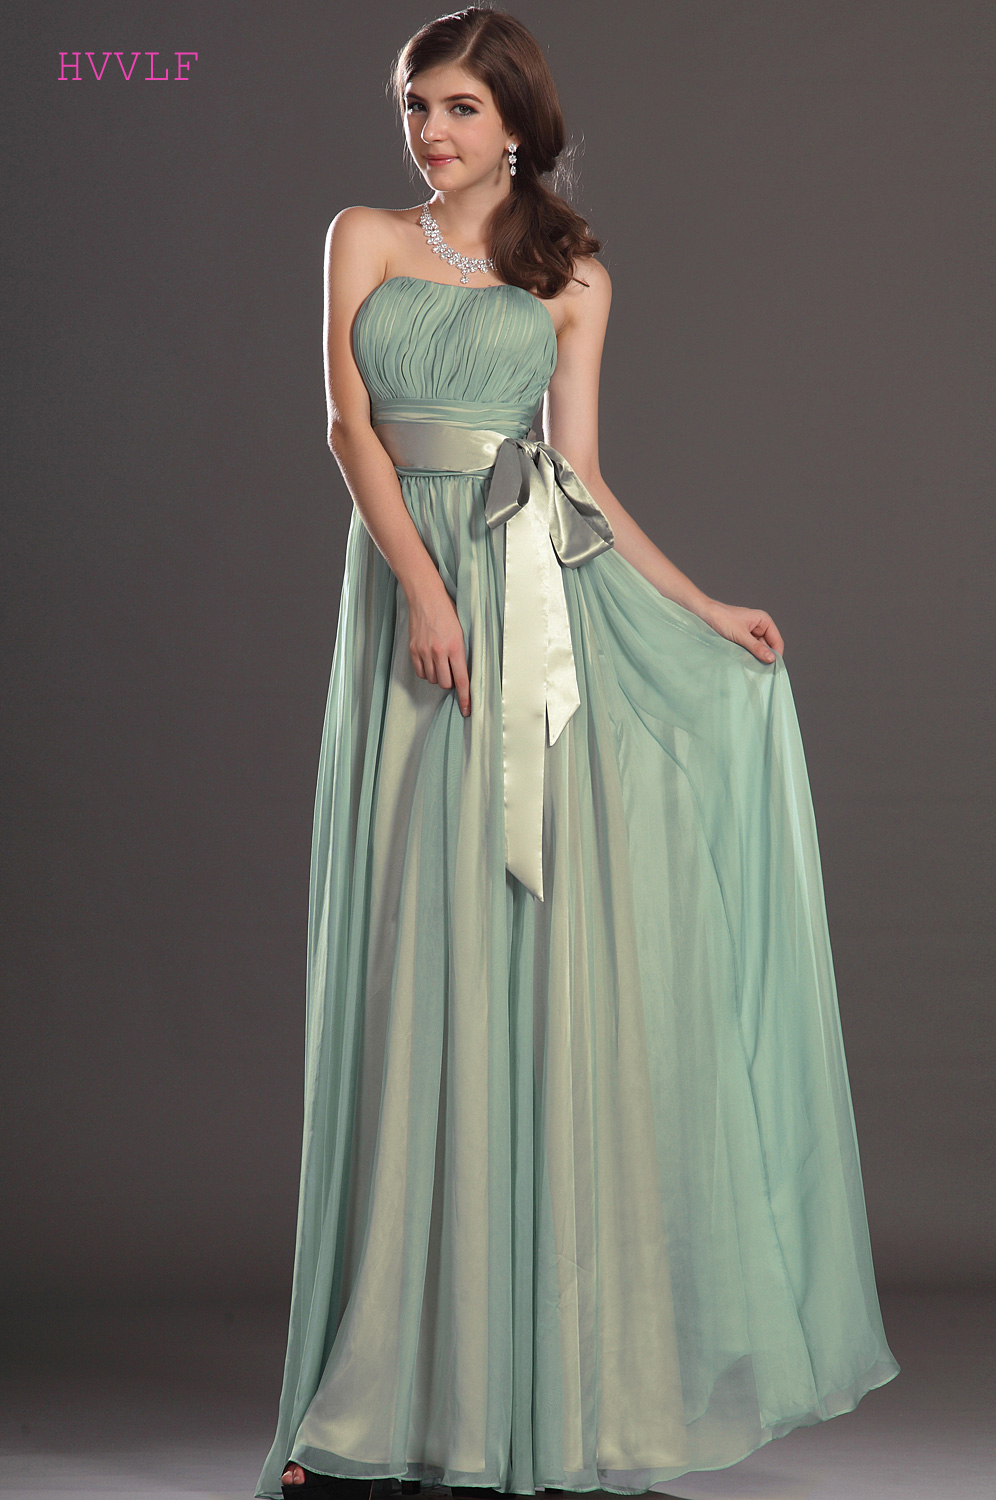 Mint Green 2019 Cheap   Bridesmaid     Dresses   Under 50 A-line Sweetheart Chiffon Bow Backless Long Wedding Party   Dresses